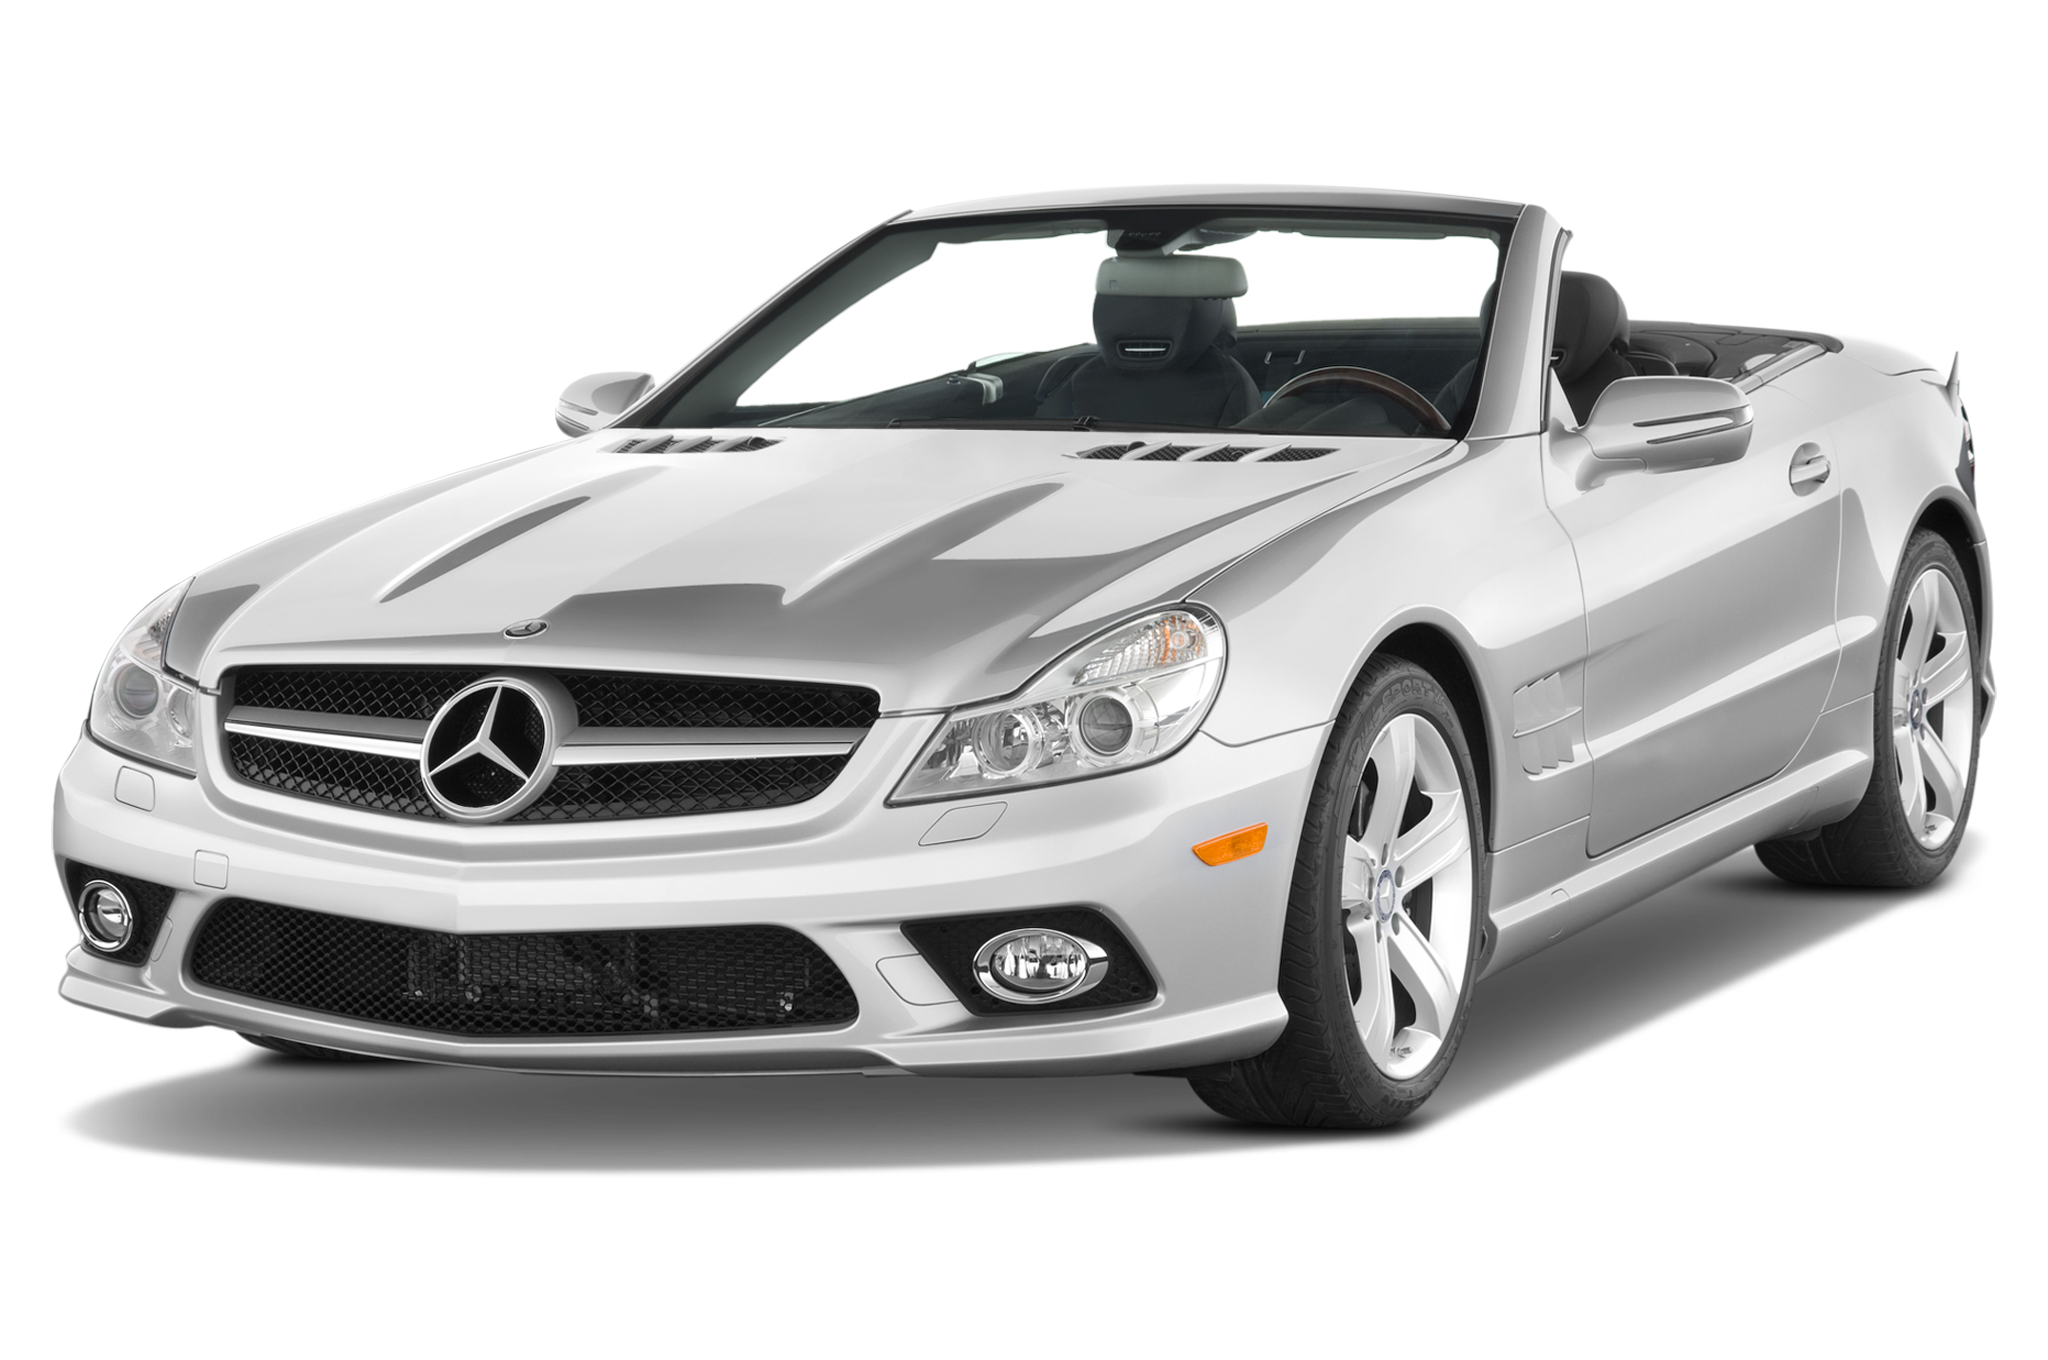 2011 mercedes benz sl550 mercedes benz luxury convertible review automobile magazine. Black Bedroom Furniture Sets. Home Design Ideas